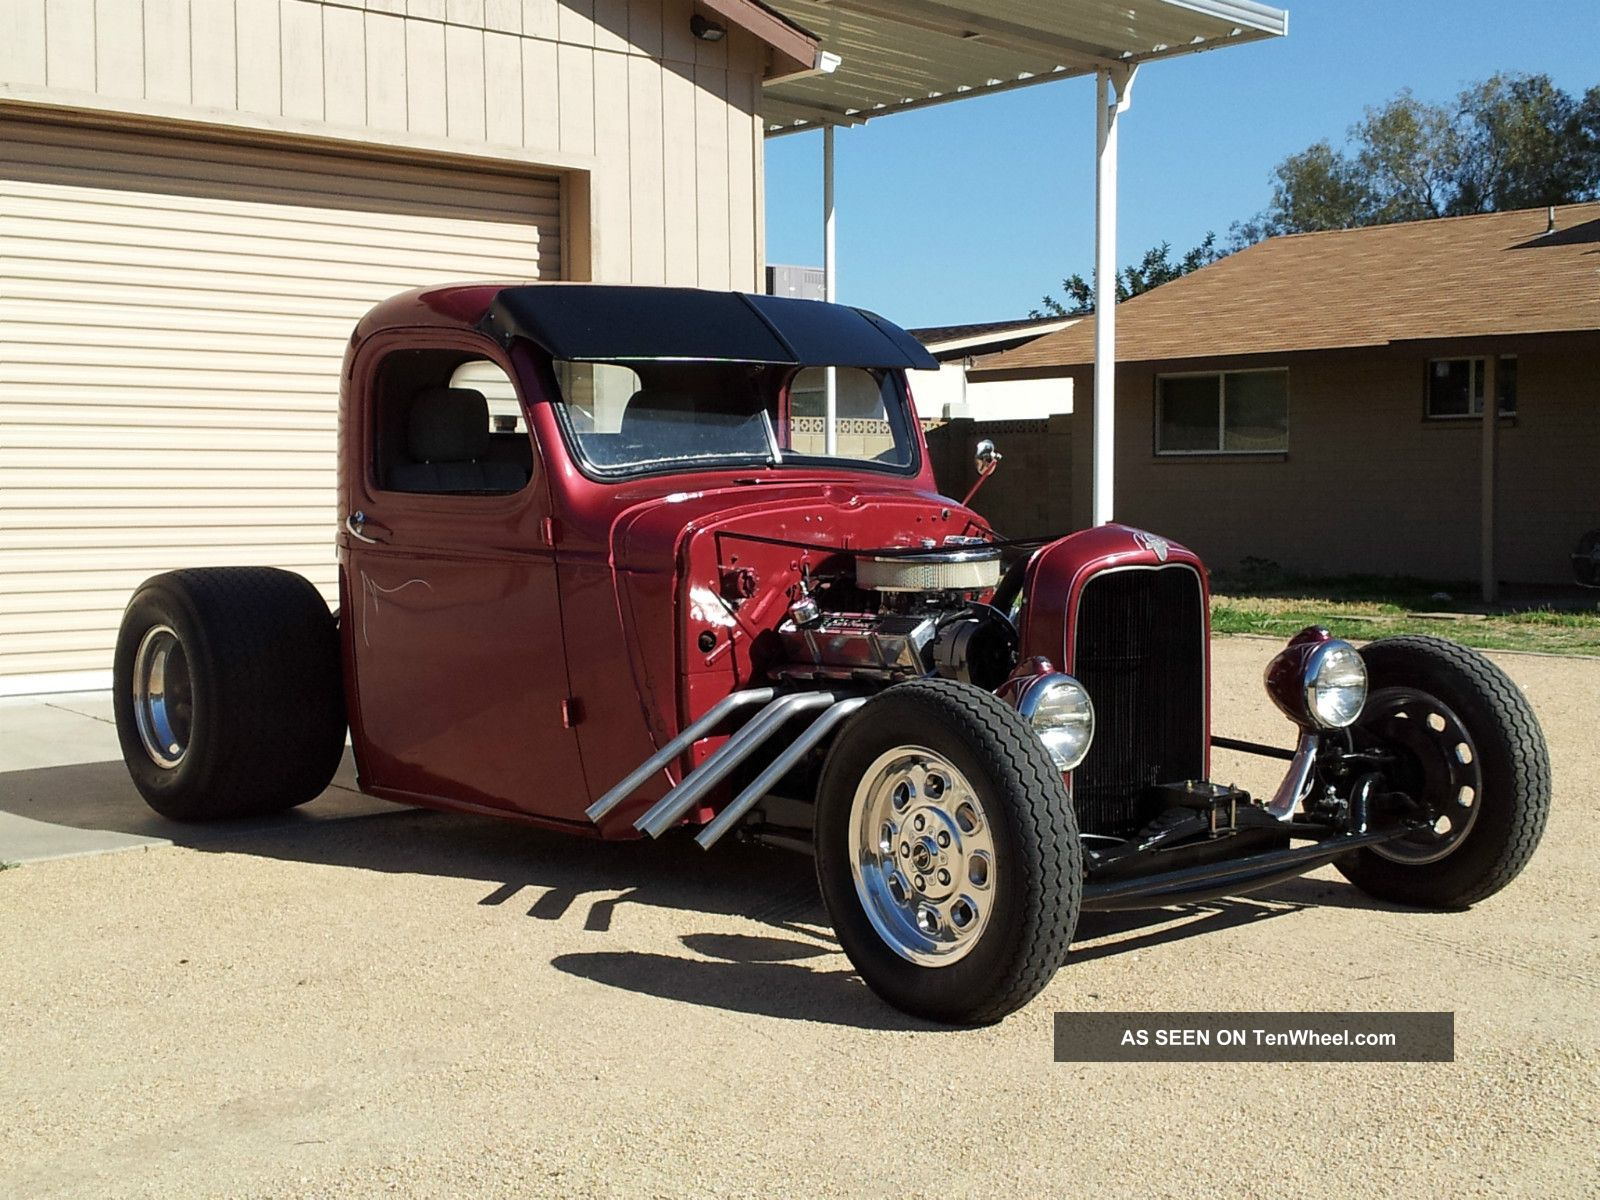 1939 Chevy Pickup Truck - Hot Street Rat Rod - Cool Lookin Truck Other Pickups photo